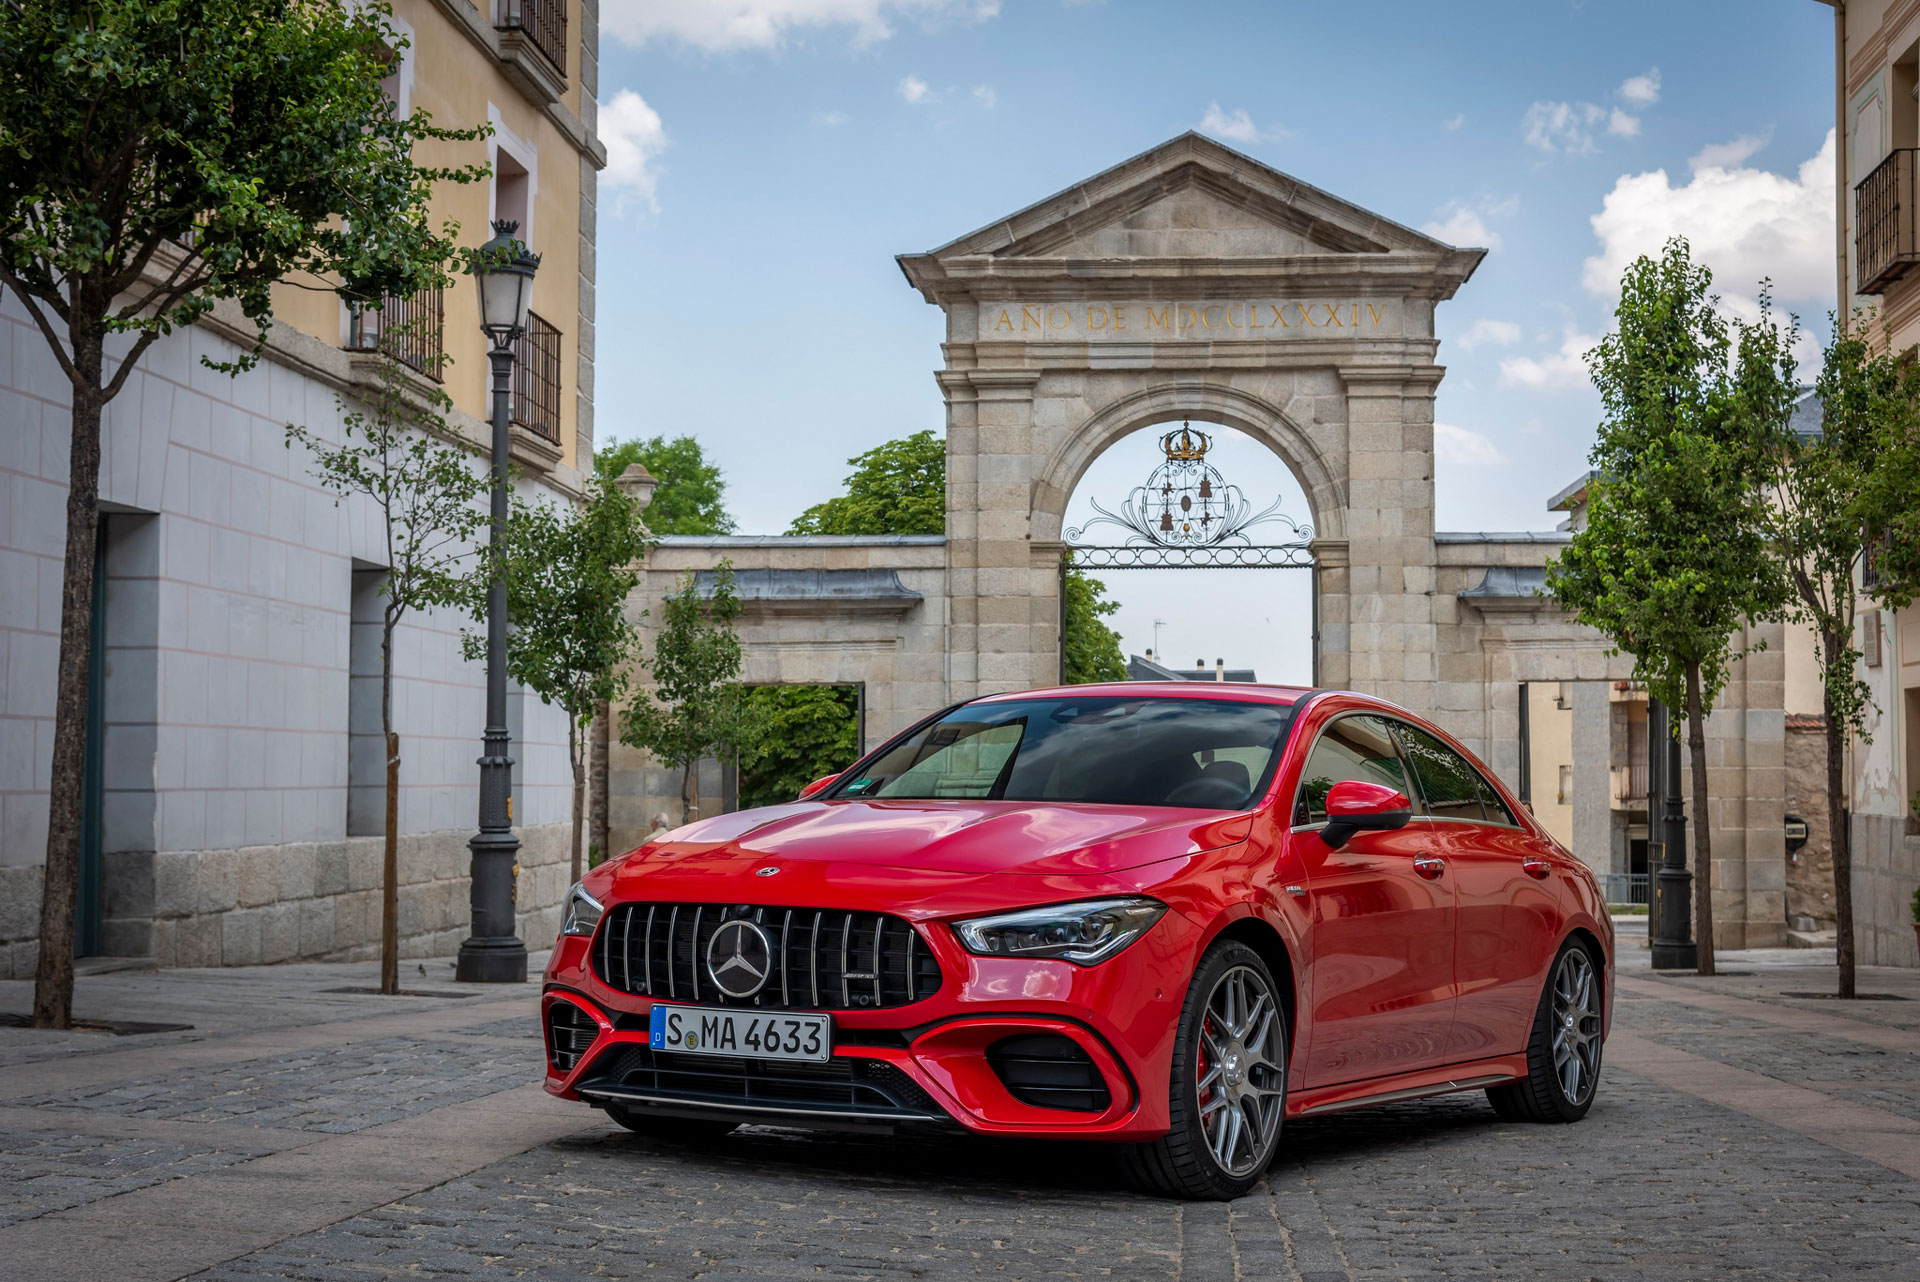 Автомобиль Mercedes-Benz CLA Coupe вид спереди